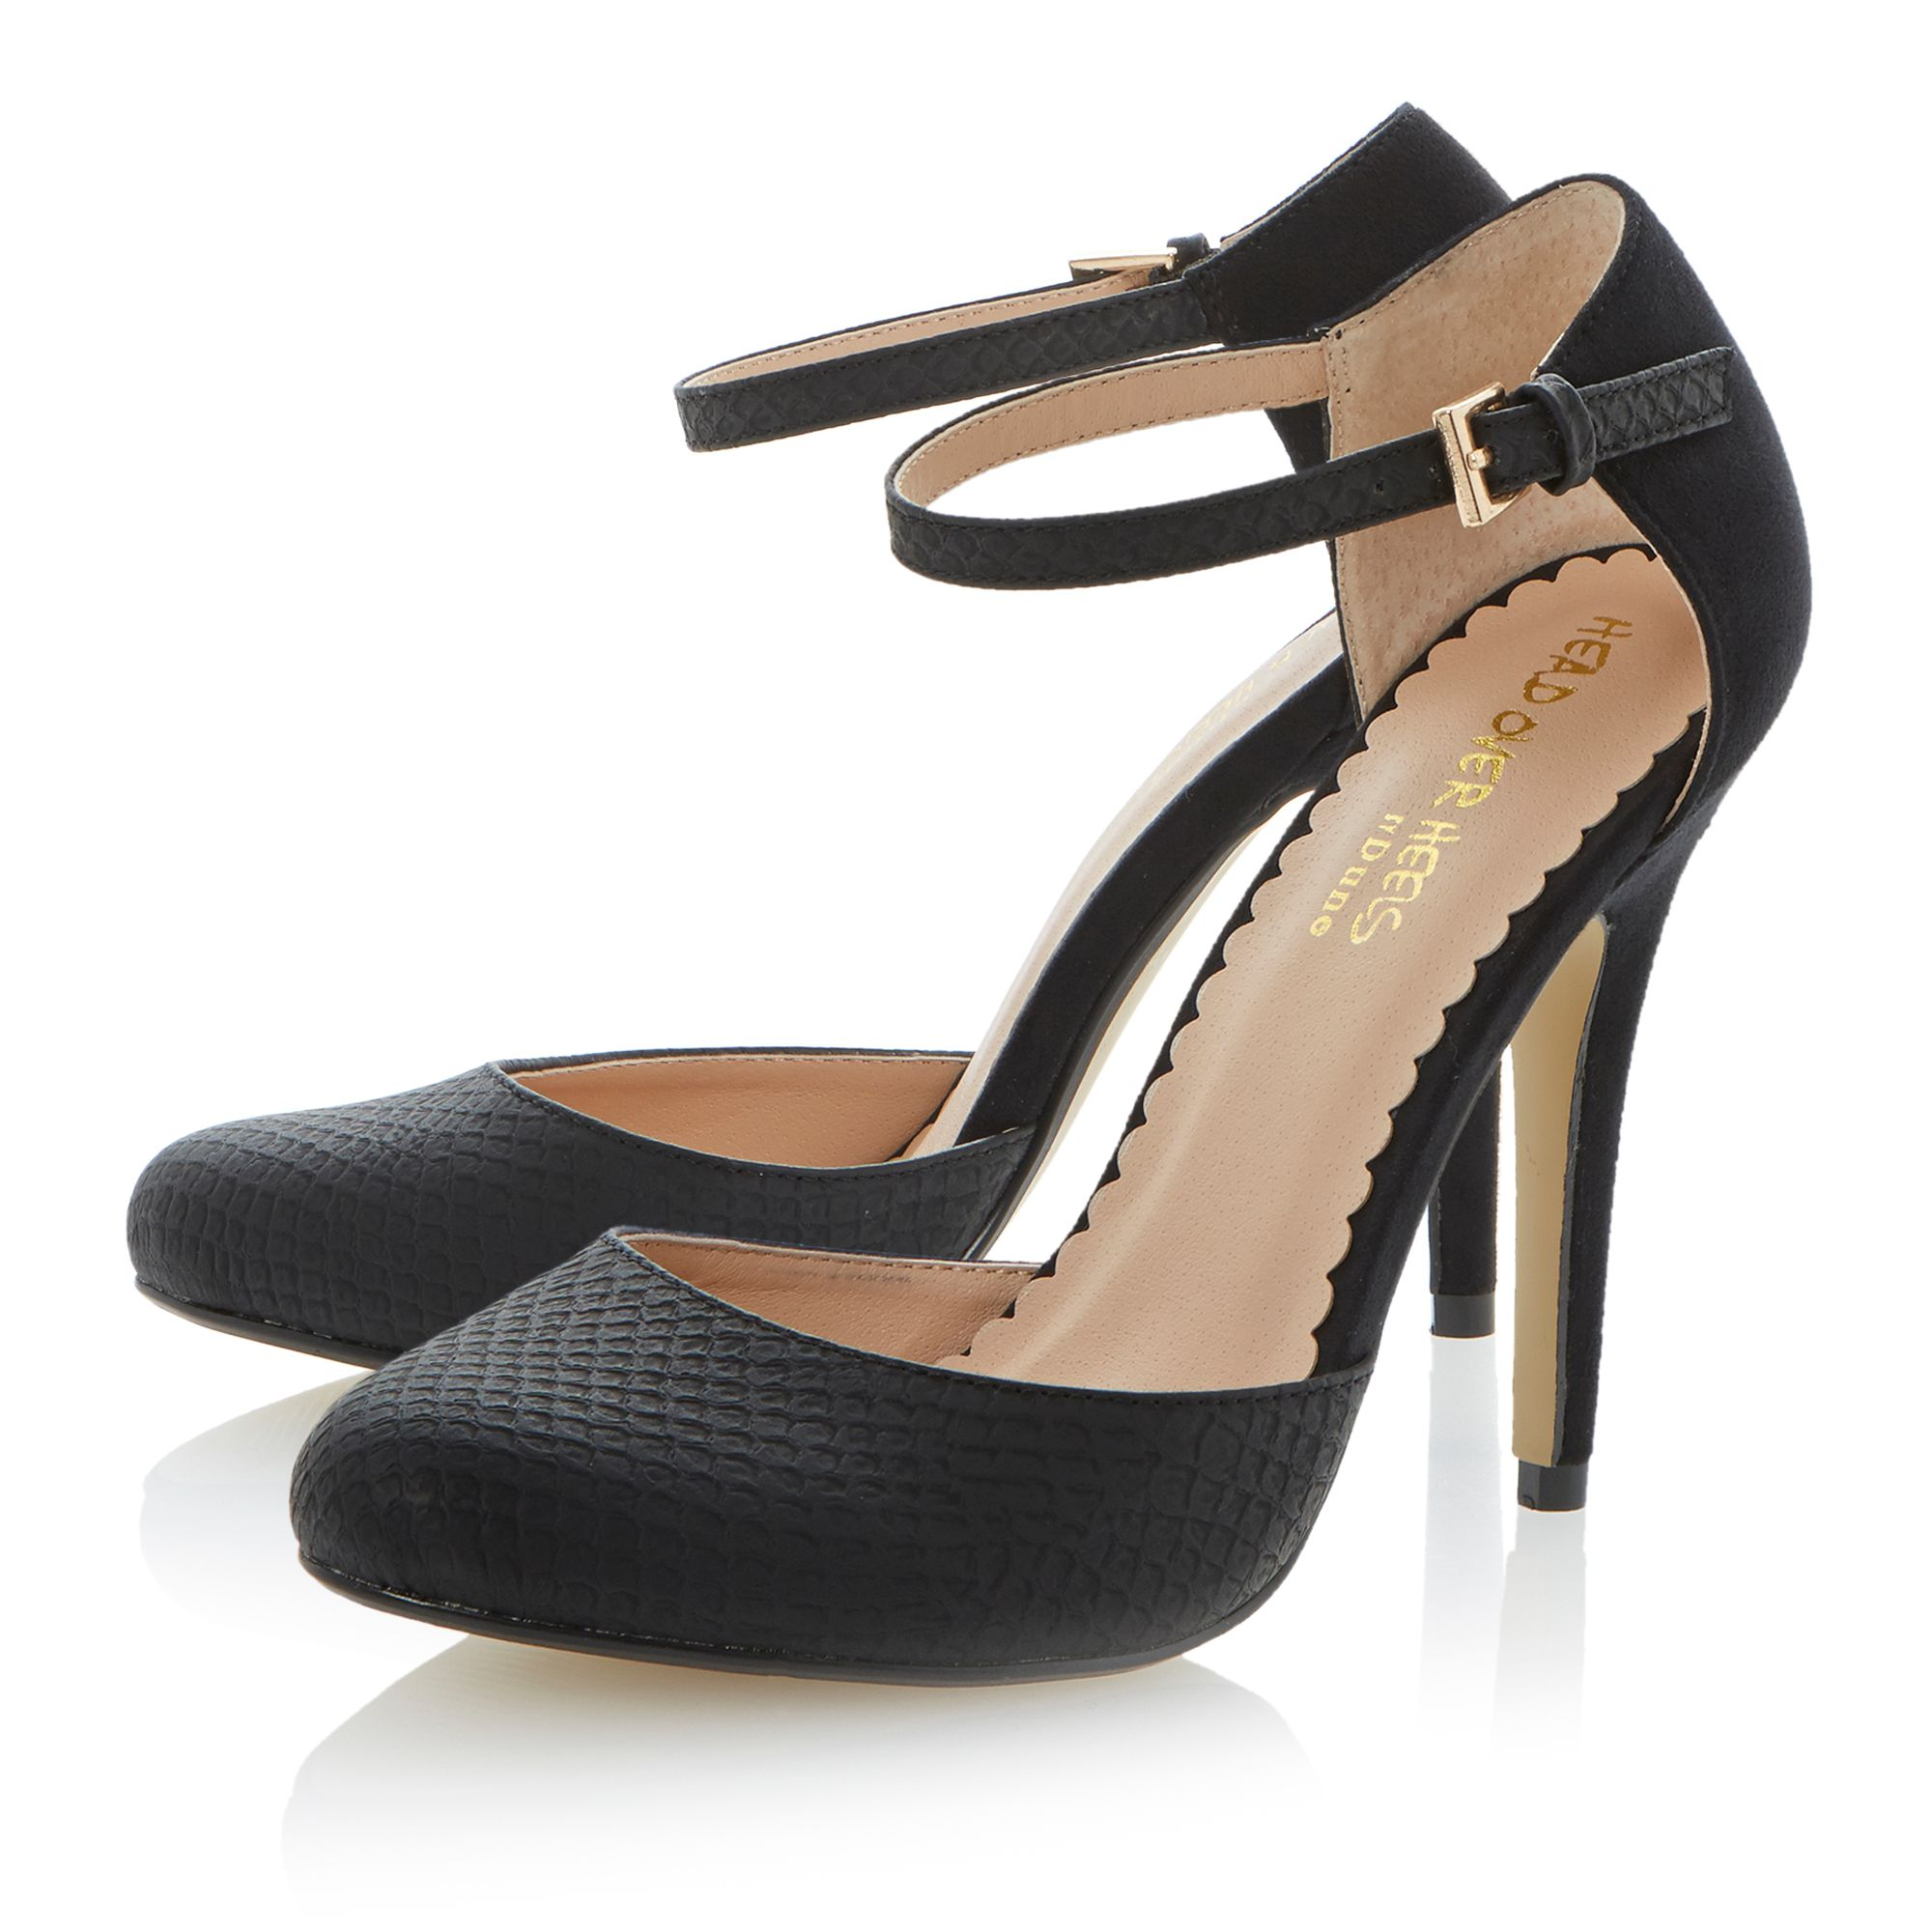 Danu round toe stiletto buckle court shoes